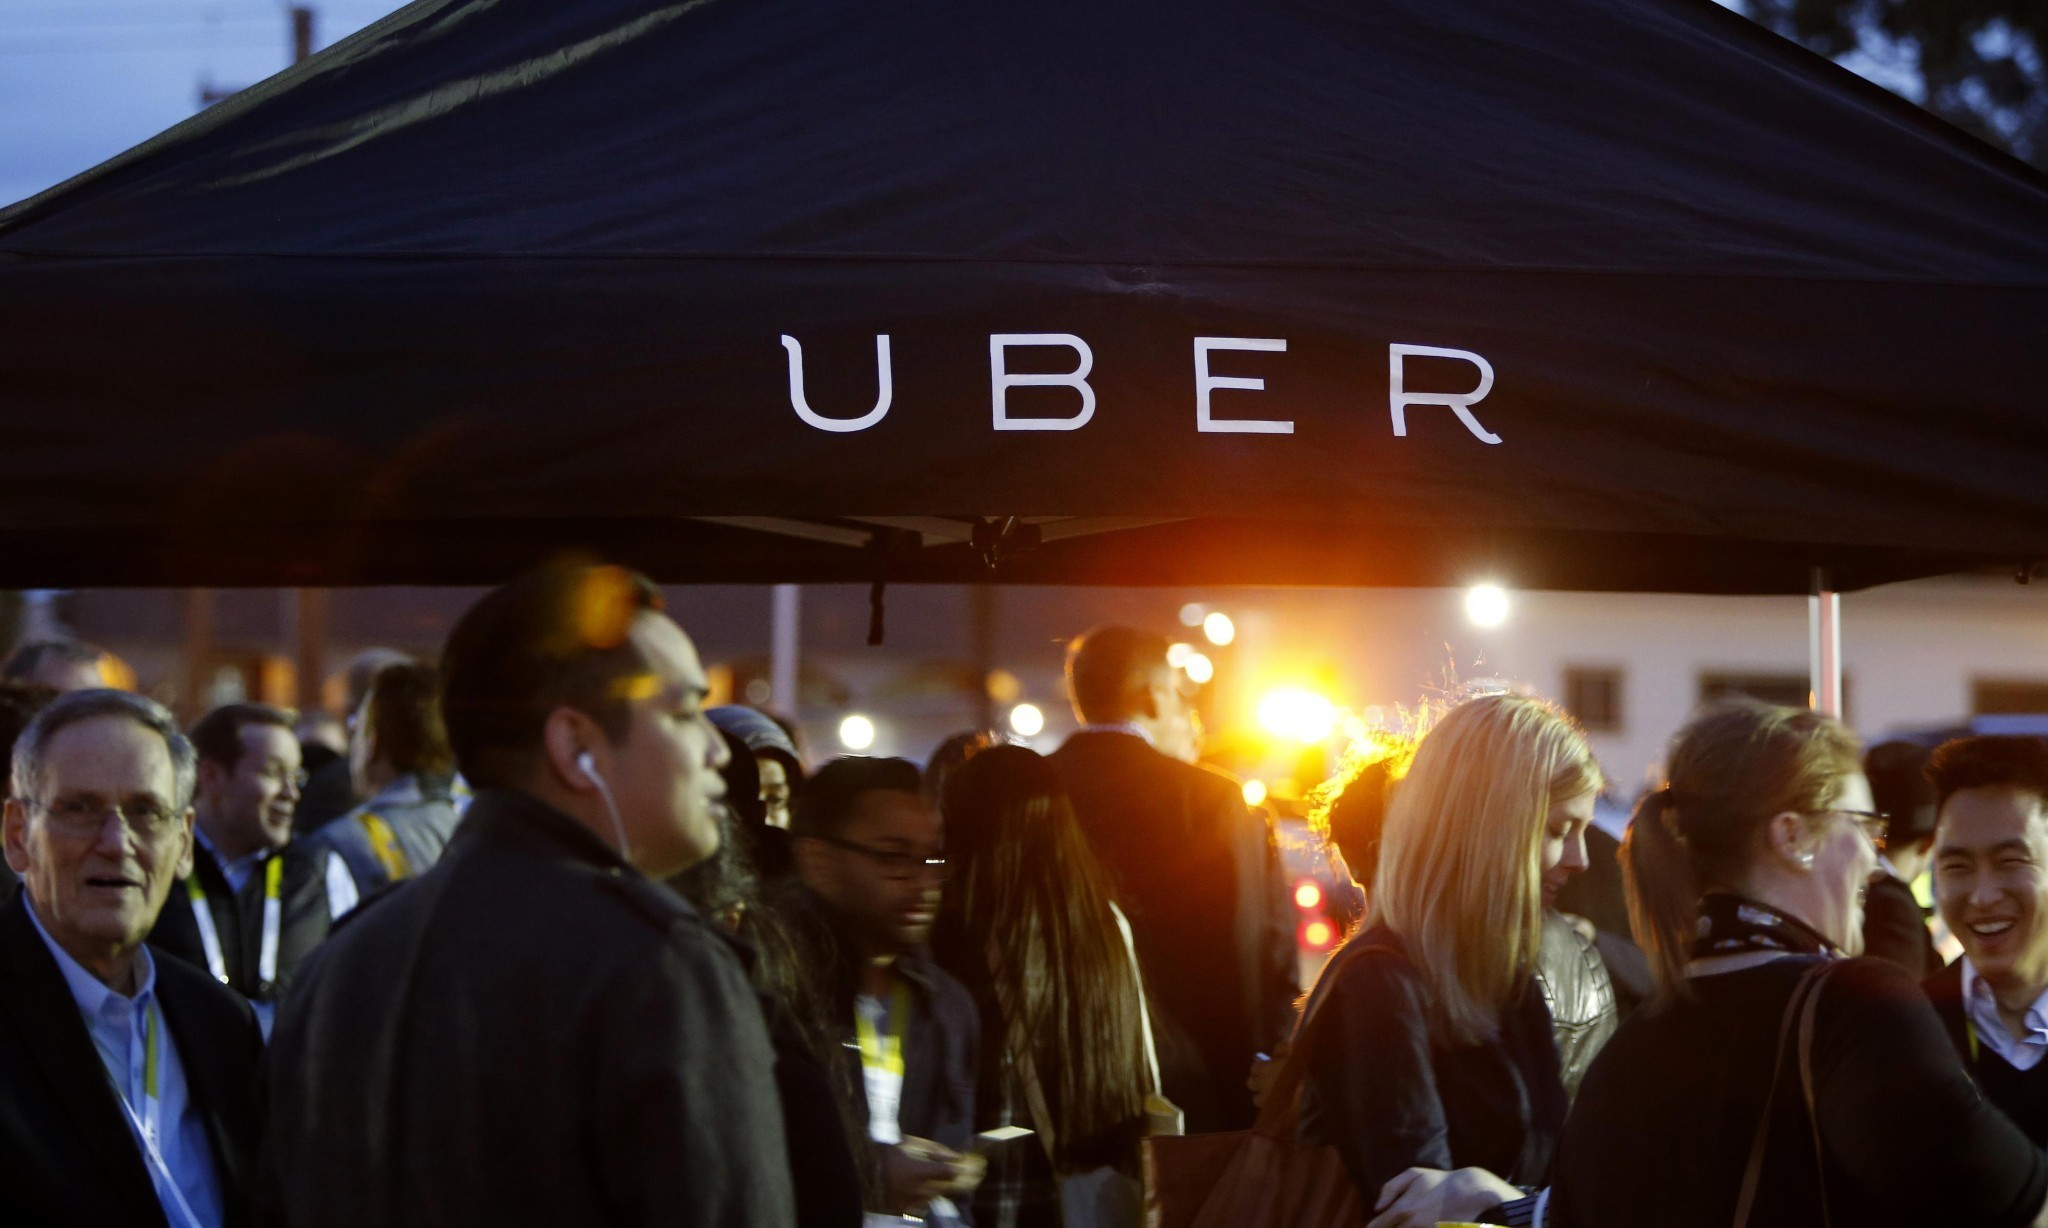 Uber CEO investigated over allegations of fraud in price-fixing case